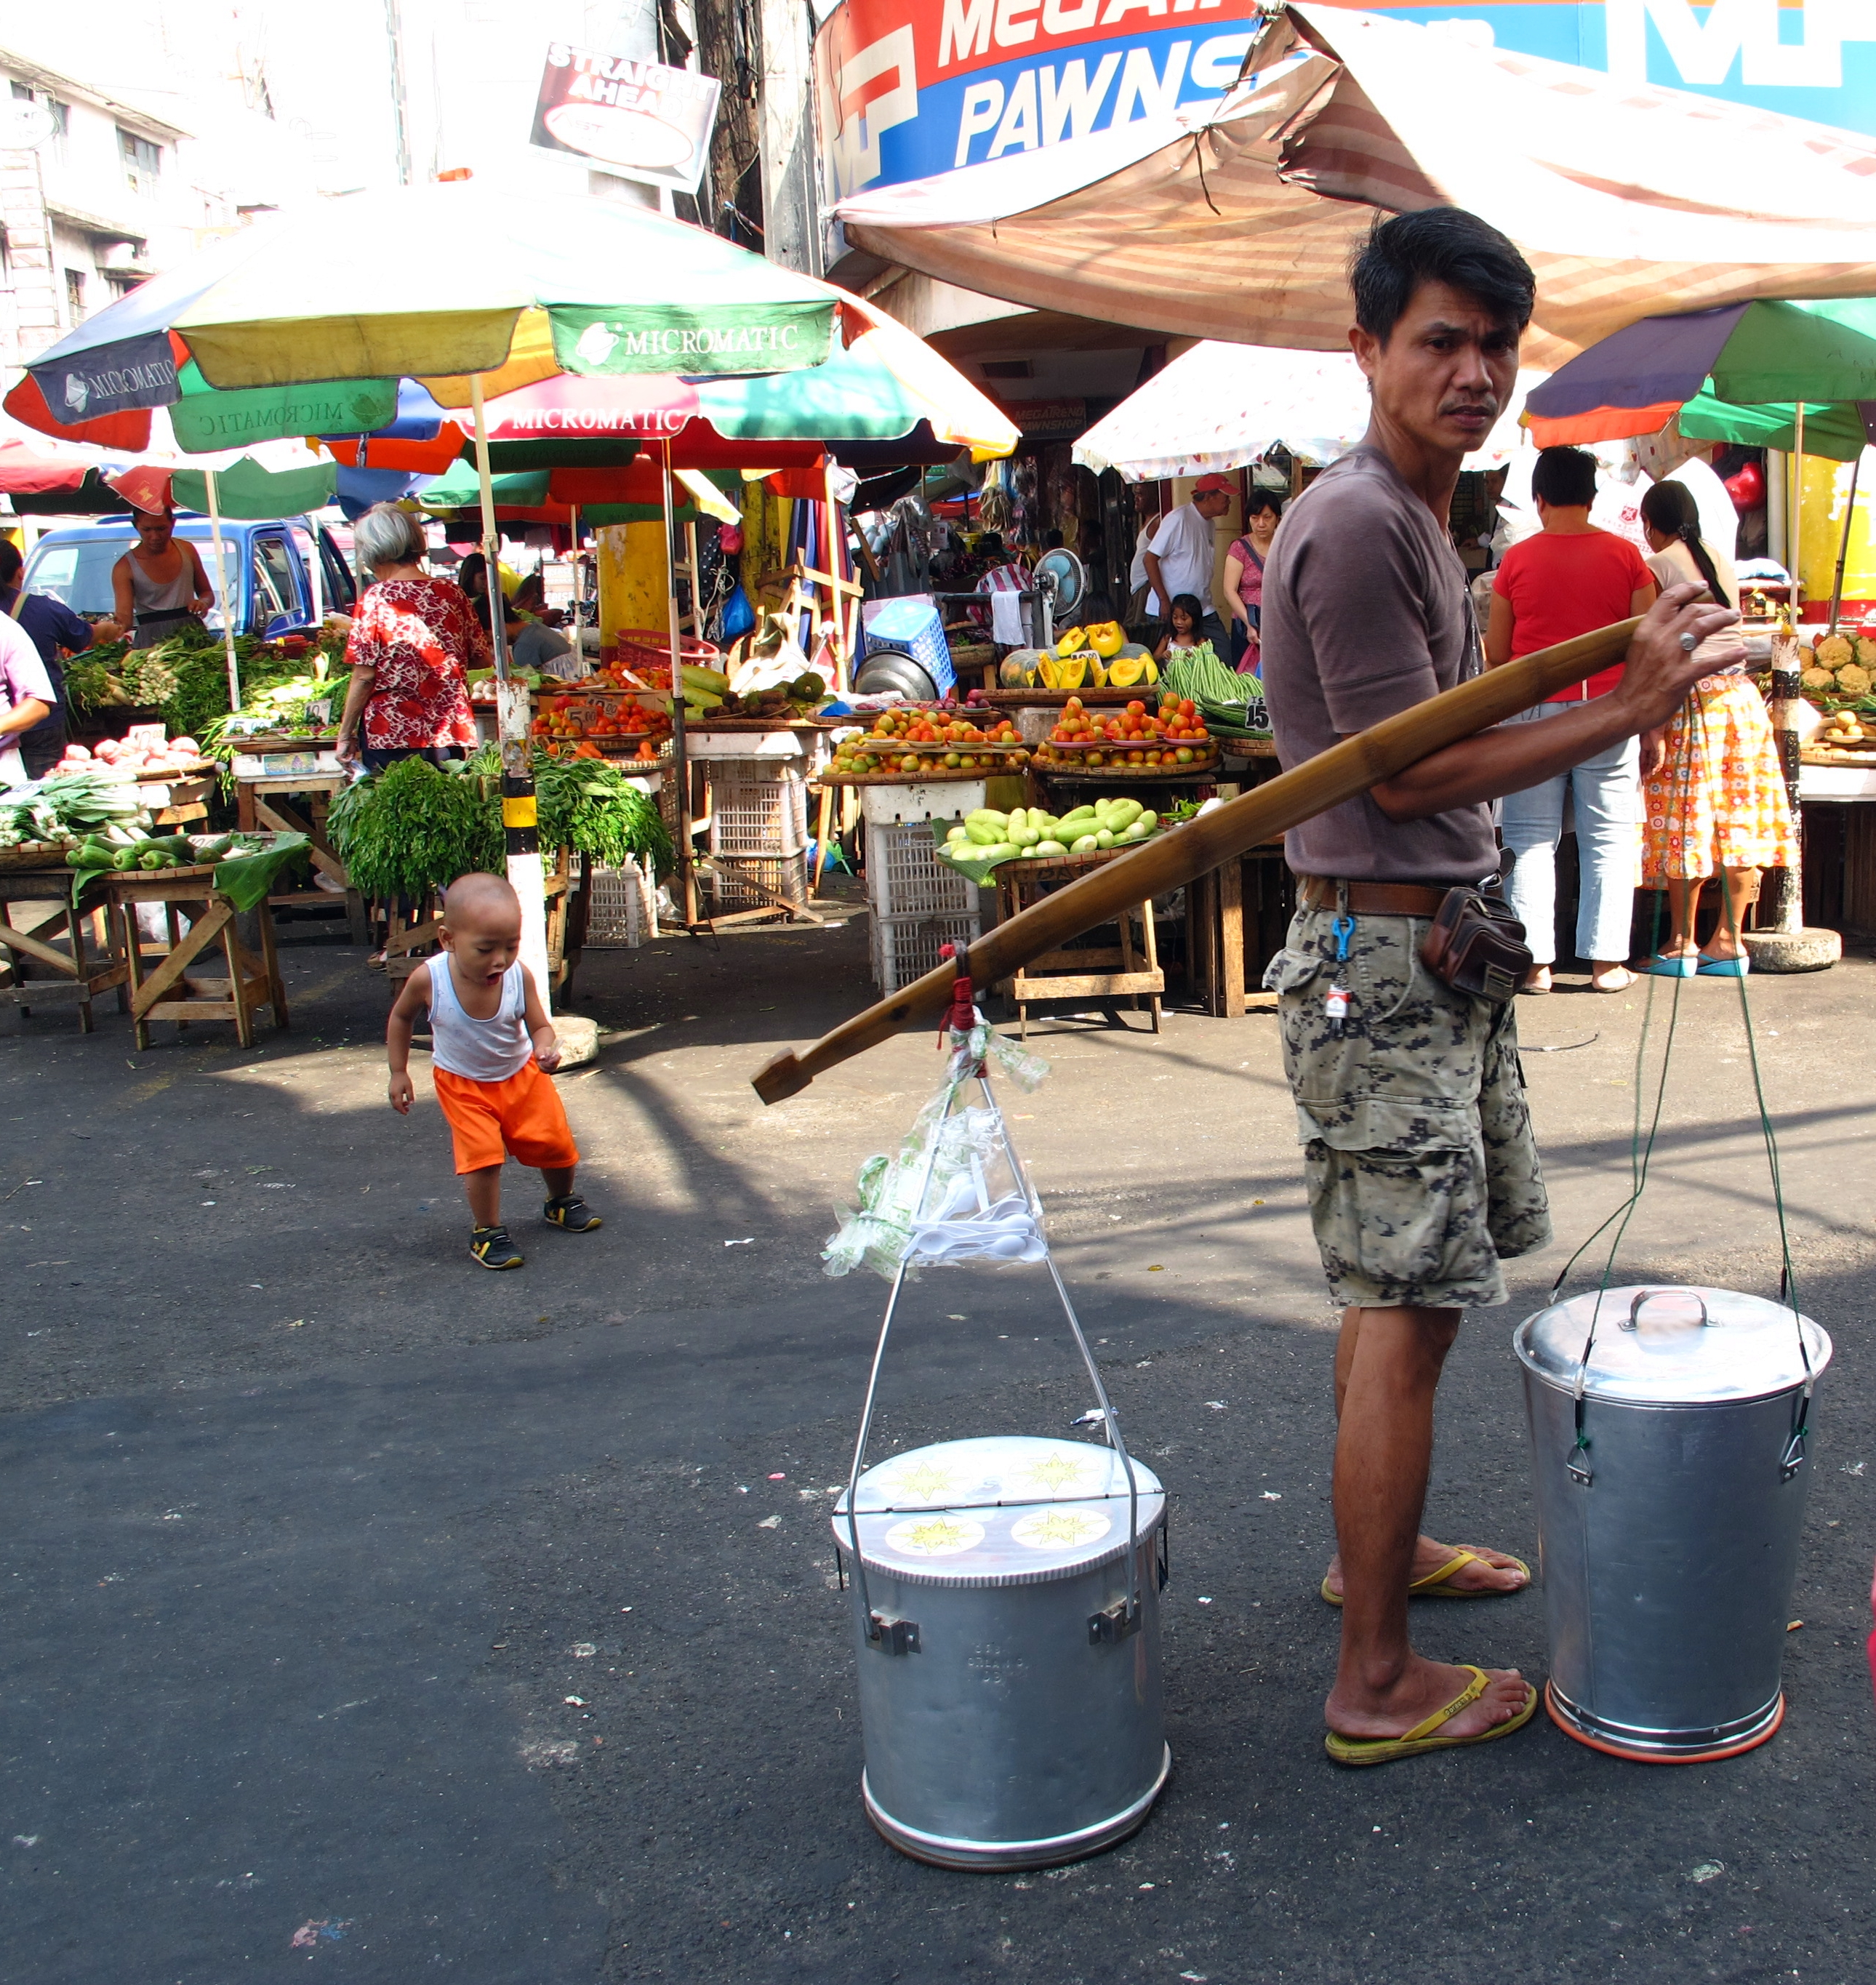 Street Food Vendors In The Philippines